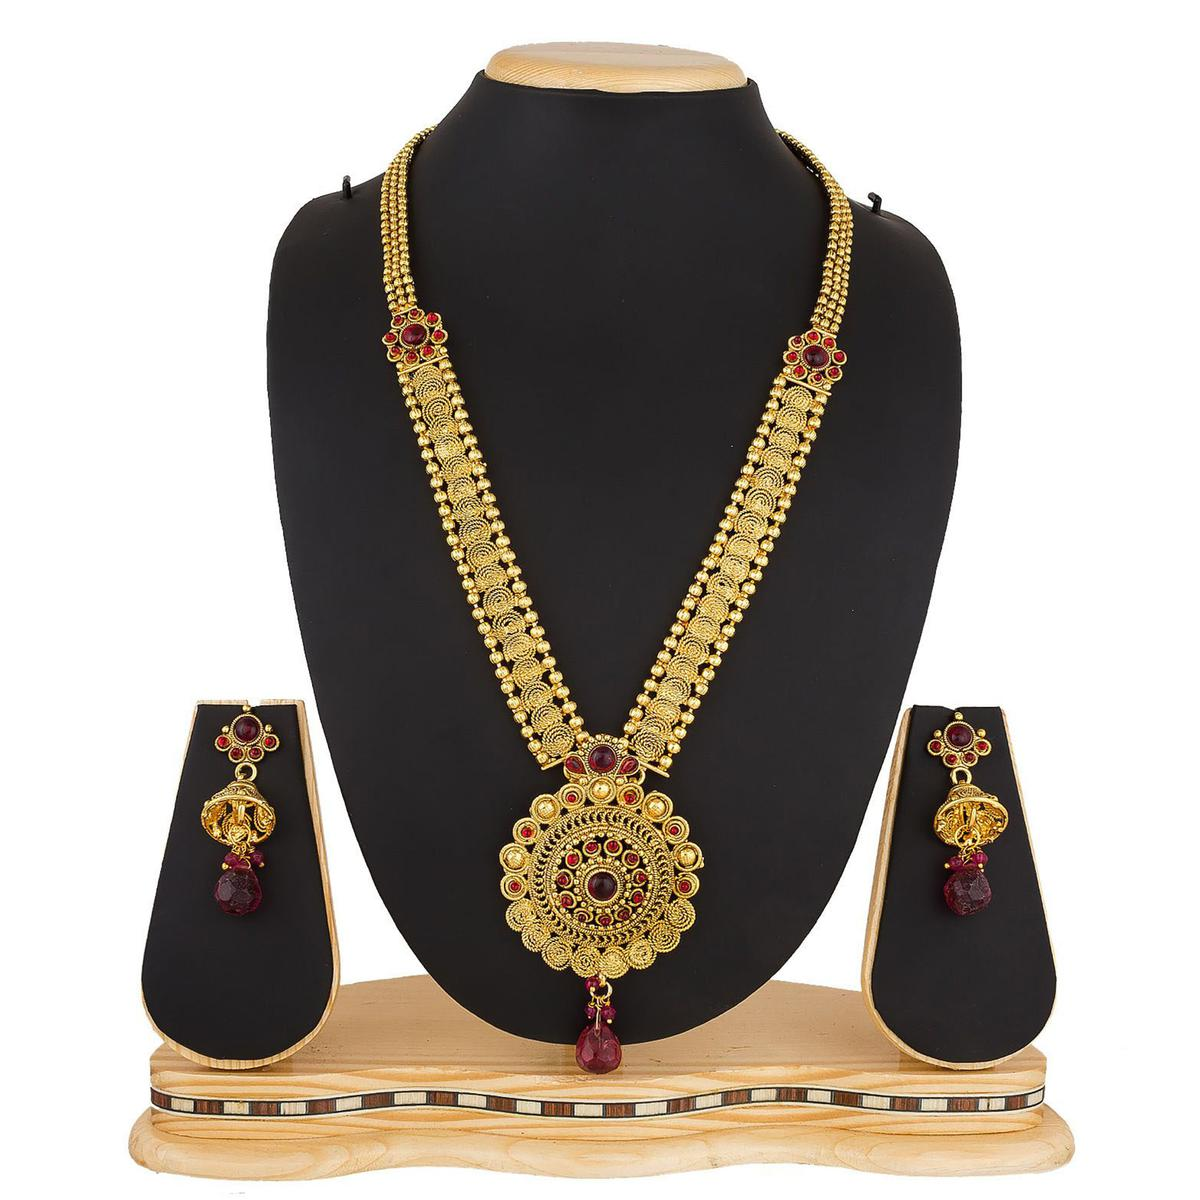 Glorious Golden Colored Stone Work Mix Metal Necklace Set